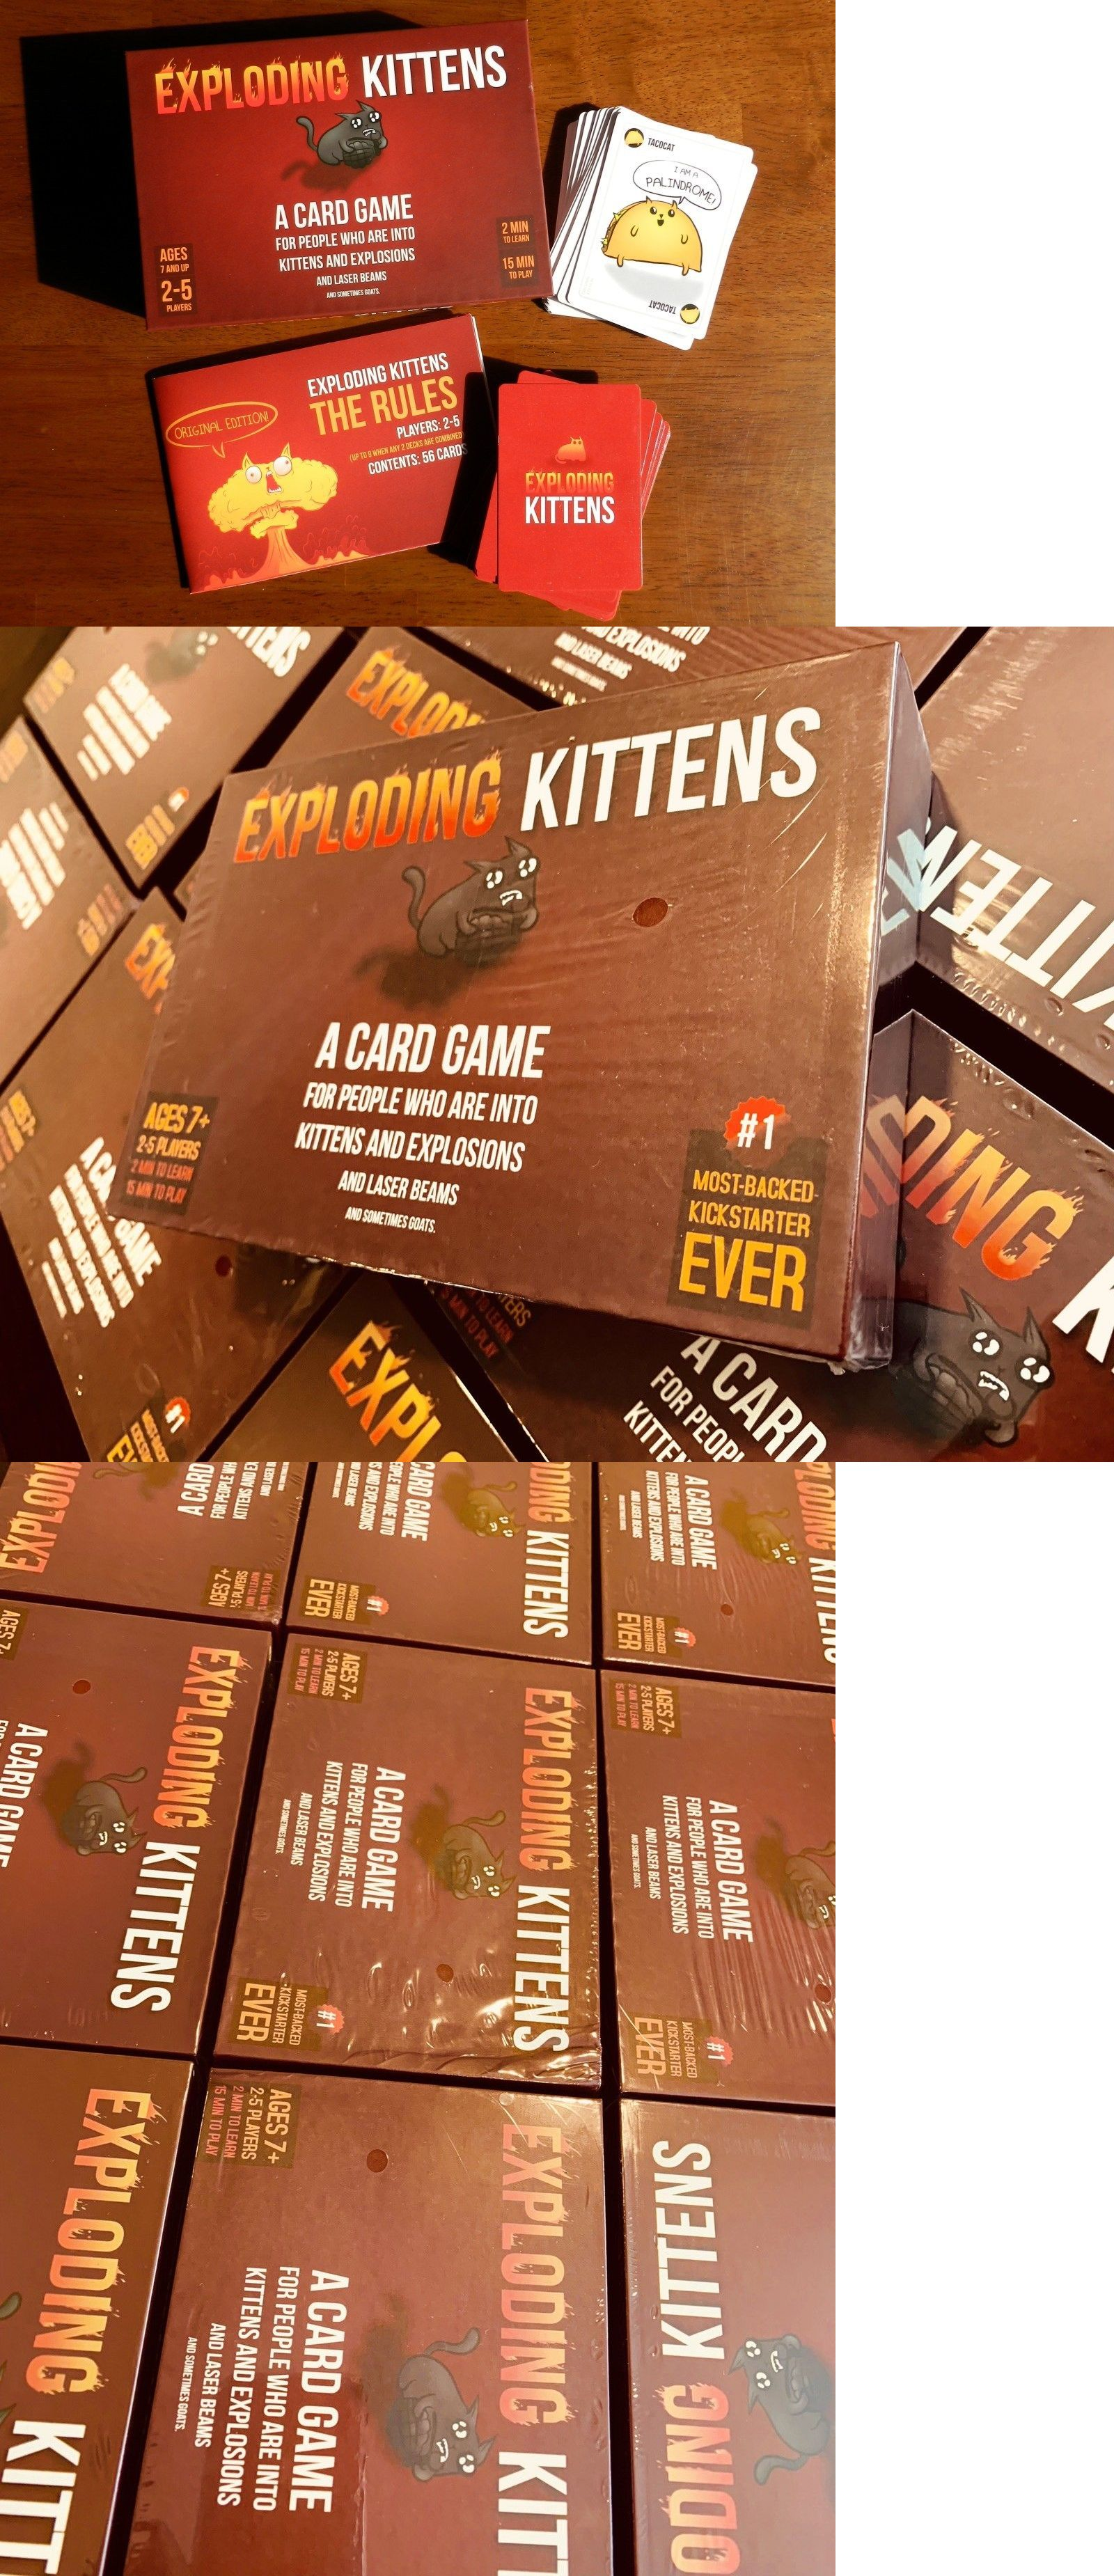 Games 233 Exploding Kittens Card Game Original Edition New In Box